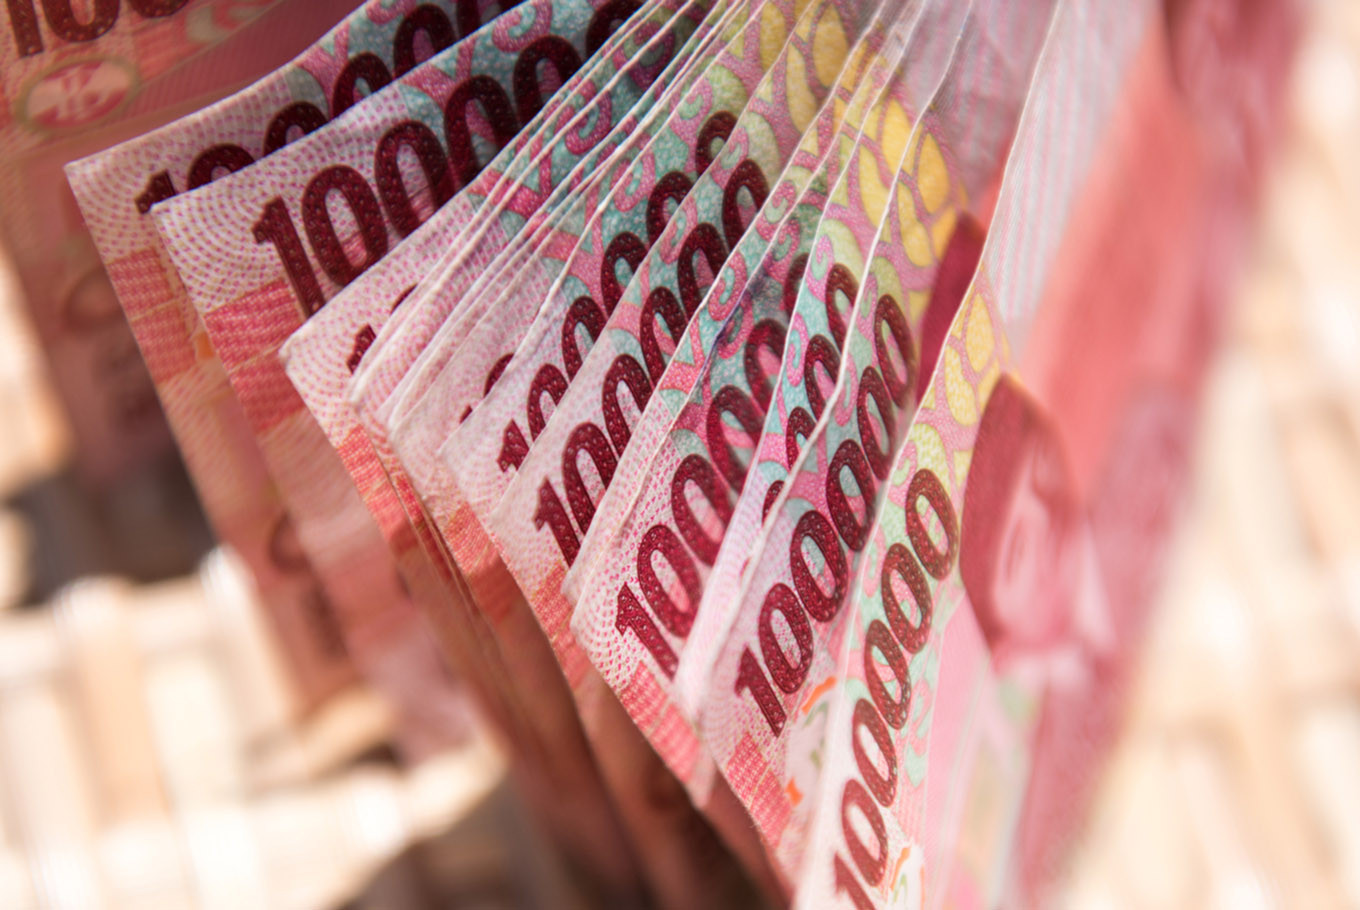 Rupiah drops further on Tuesday, heads toward Rp 15,000 per US dollar